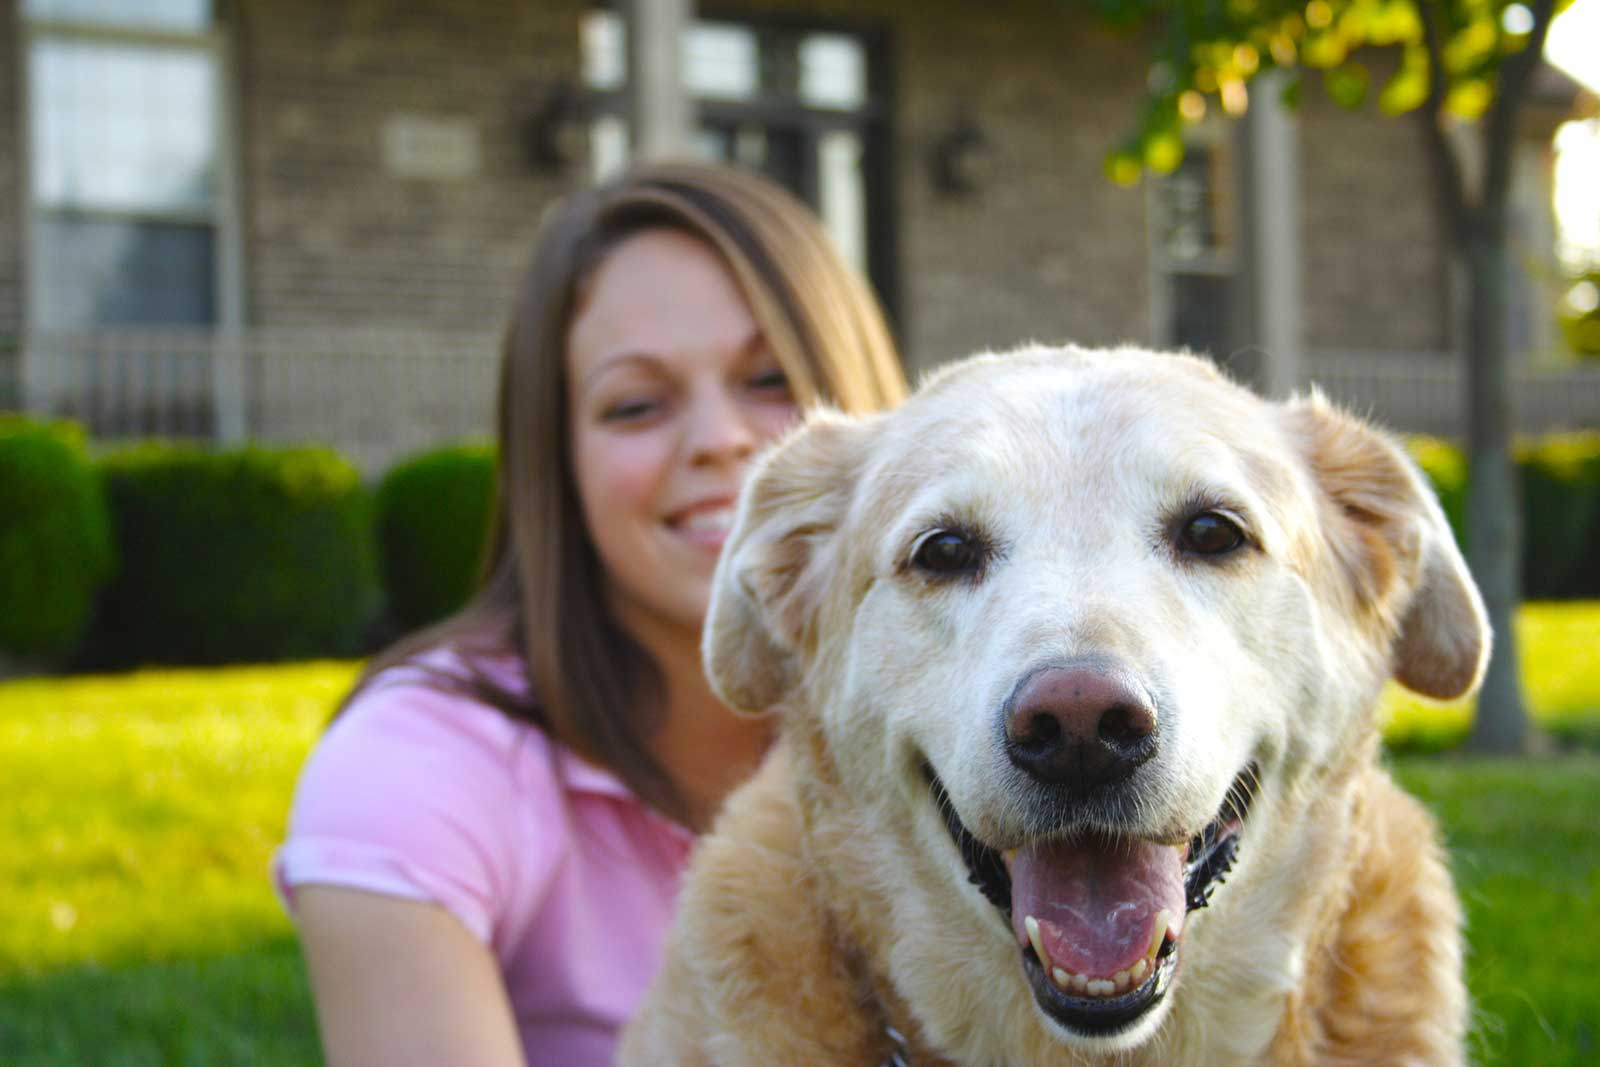 Pet Insurance 101: What Is It and Does My Pet Need It?